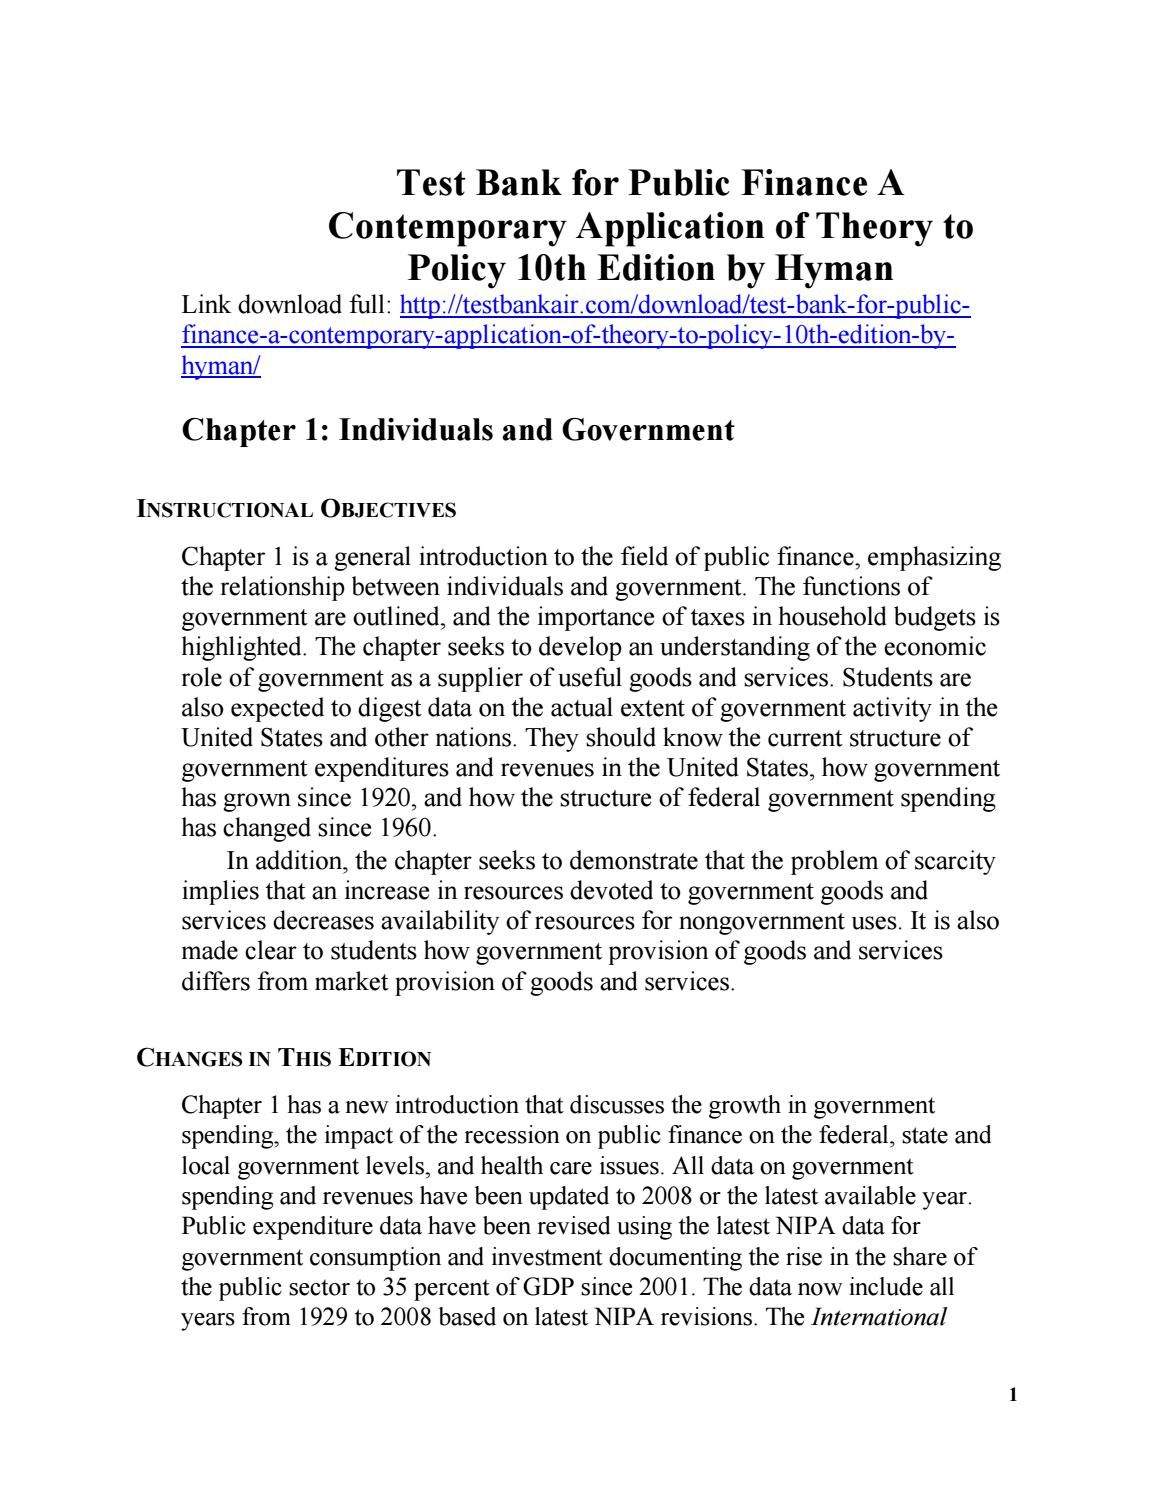 Download test bank for public finance a contemporary application of download test bank for public finance a contemporary application of theory to policy 10th edition by fandeluxe Gallery